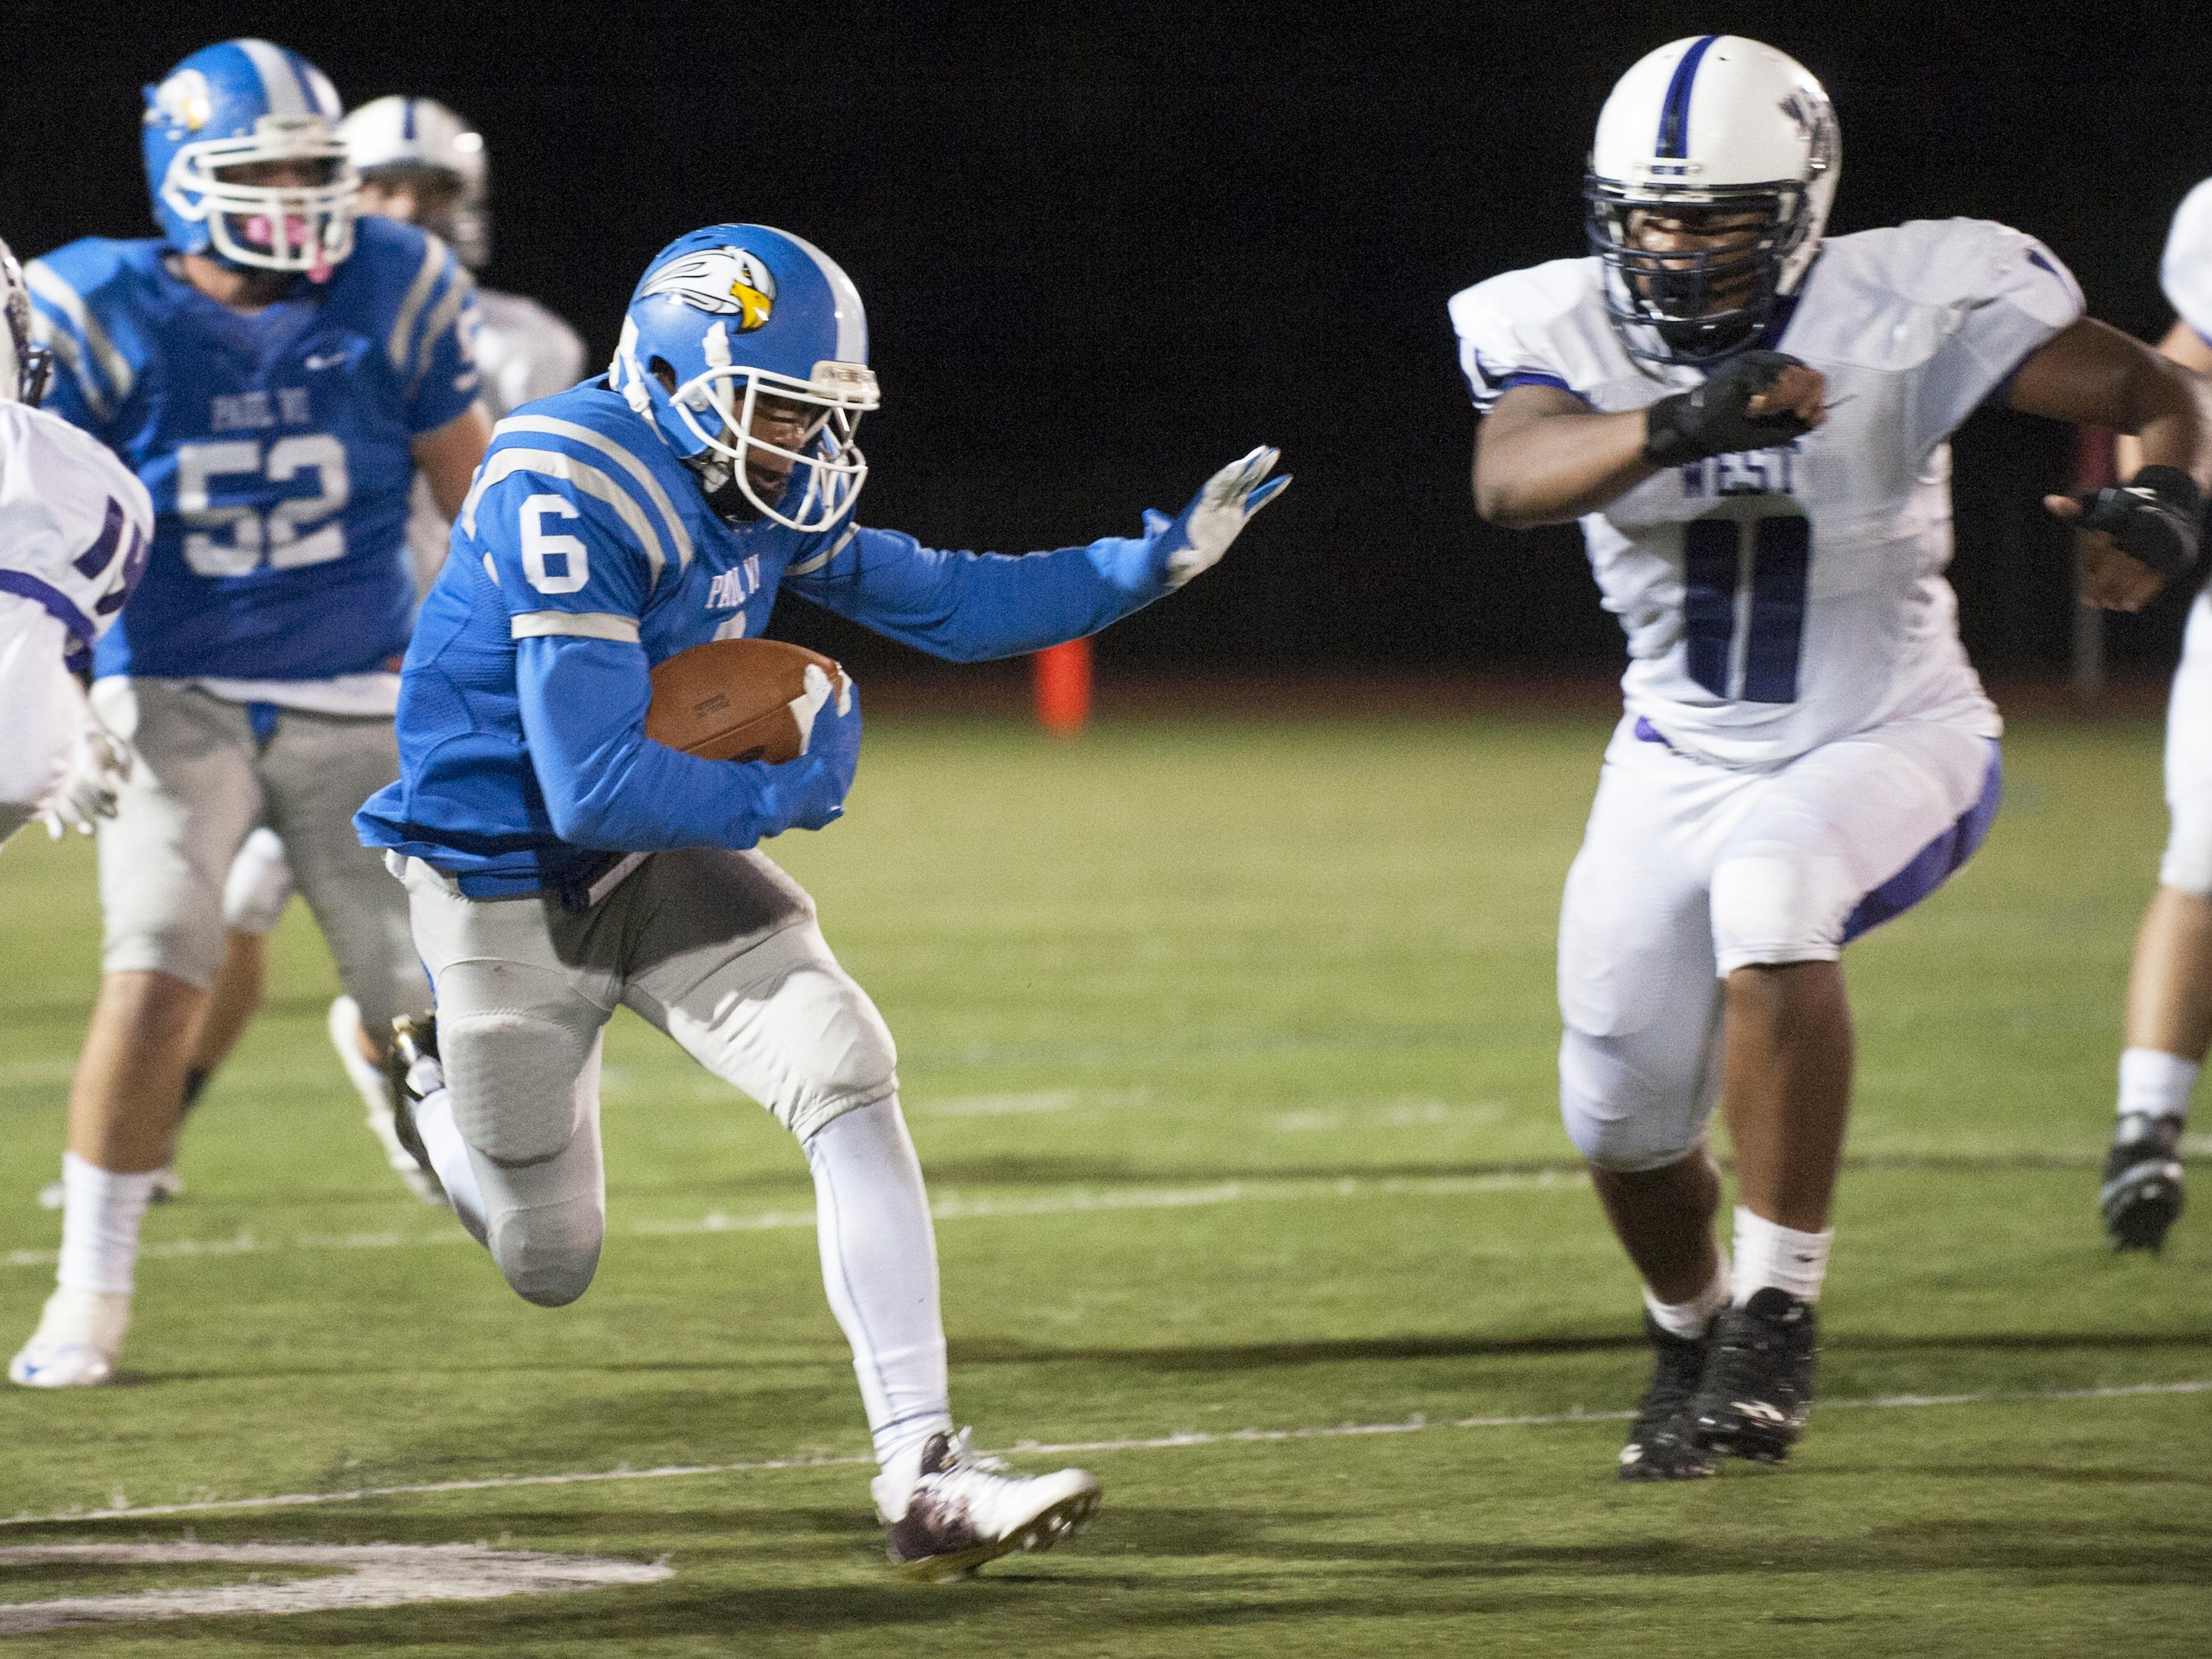 Paul VI's Stefone Moore-Green, left, tries to outrun Cherry Hill West's Lorenzo Hernandez, right, during the second quarter of Friday's game. The host Eagles prevailed with a 23-6.